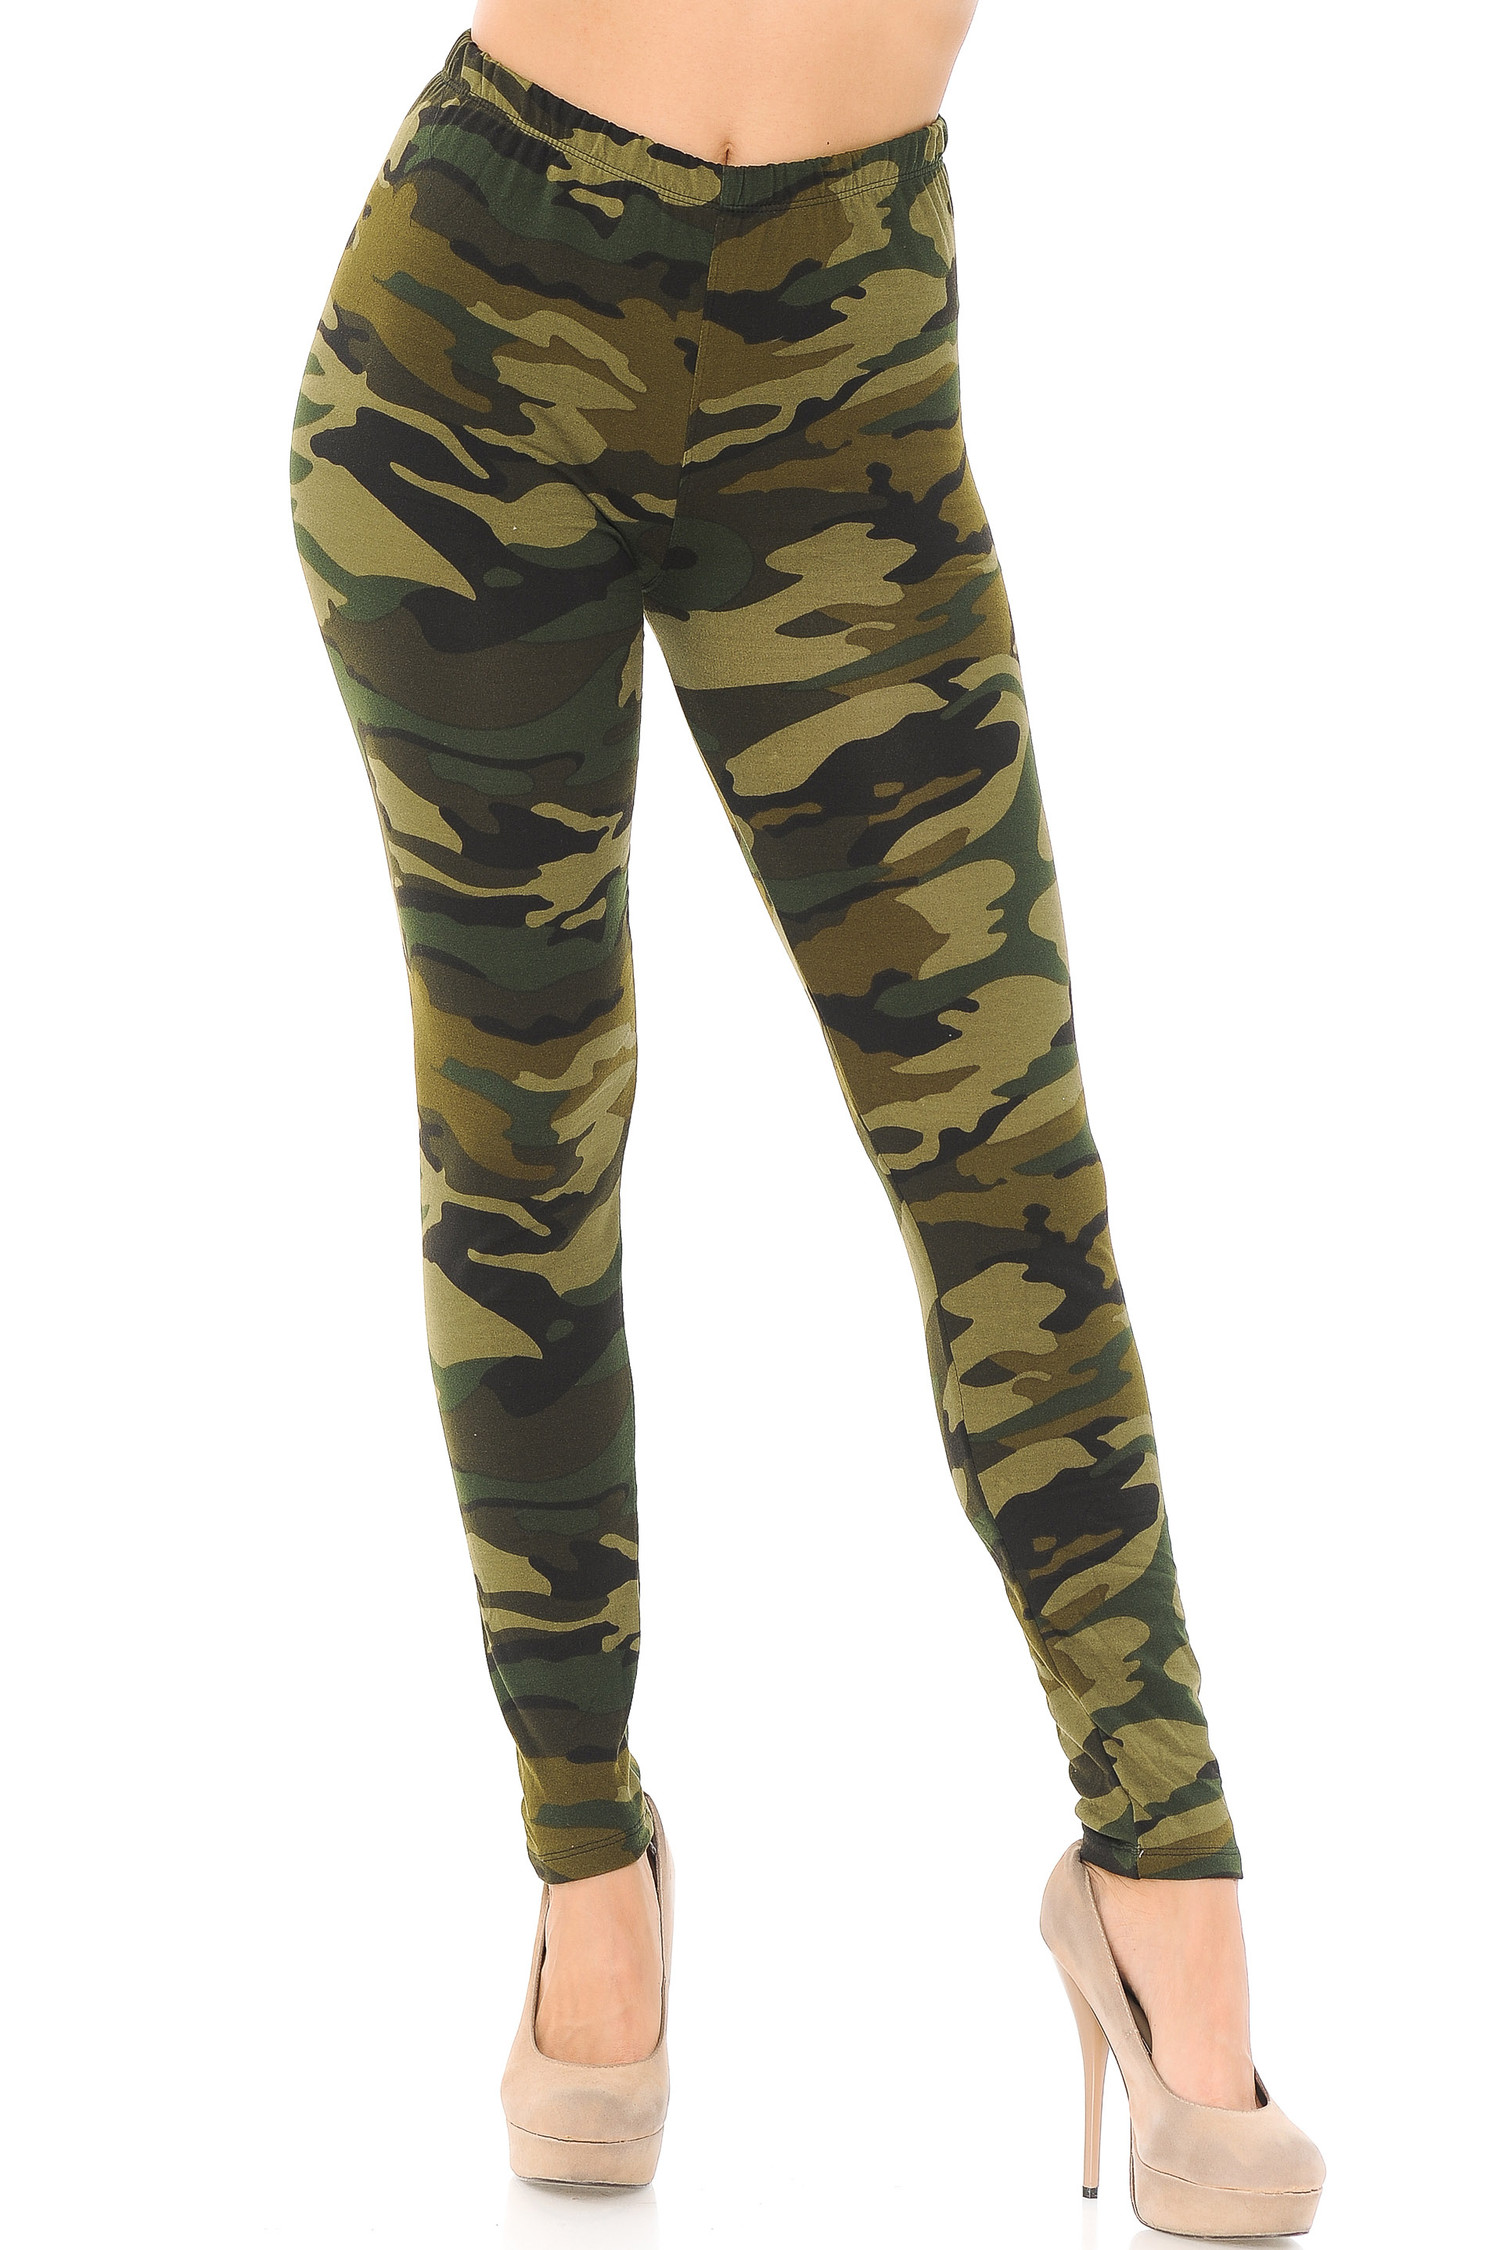 Brushed  Green Camouflage Leggings